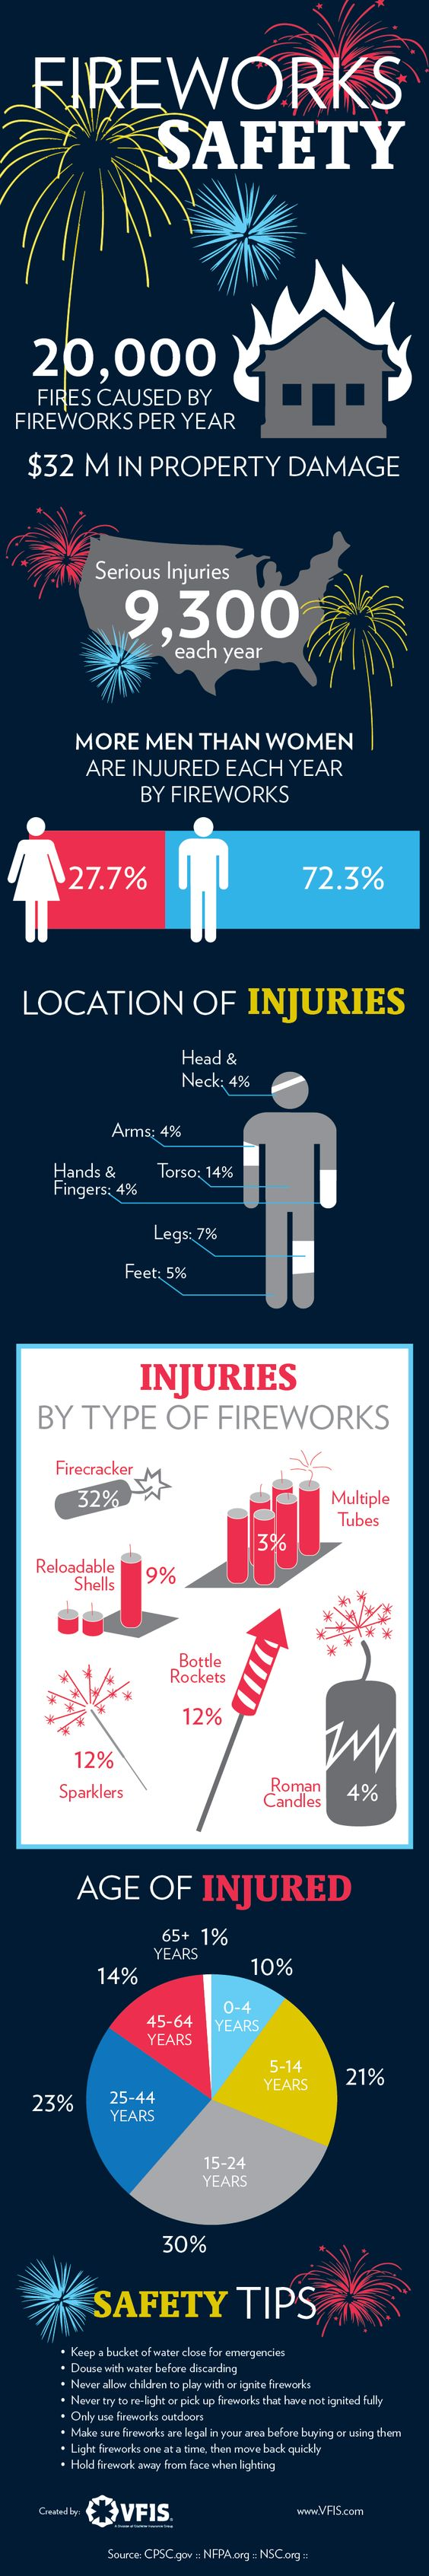 Fireworks can be dangerous. Make sure you use caution around them this holiday weekend! #IndependenceDay